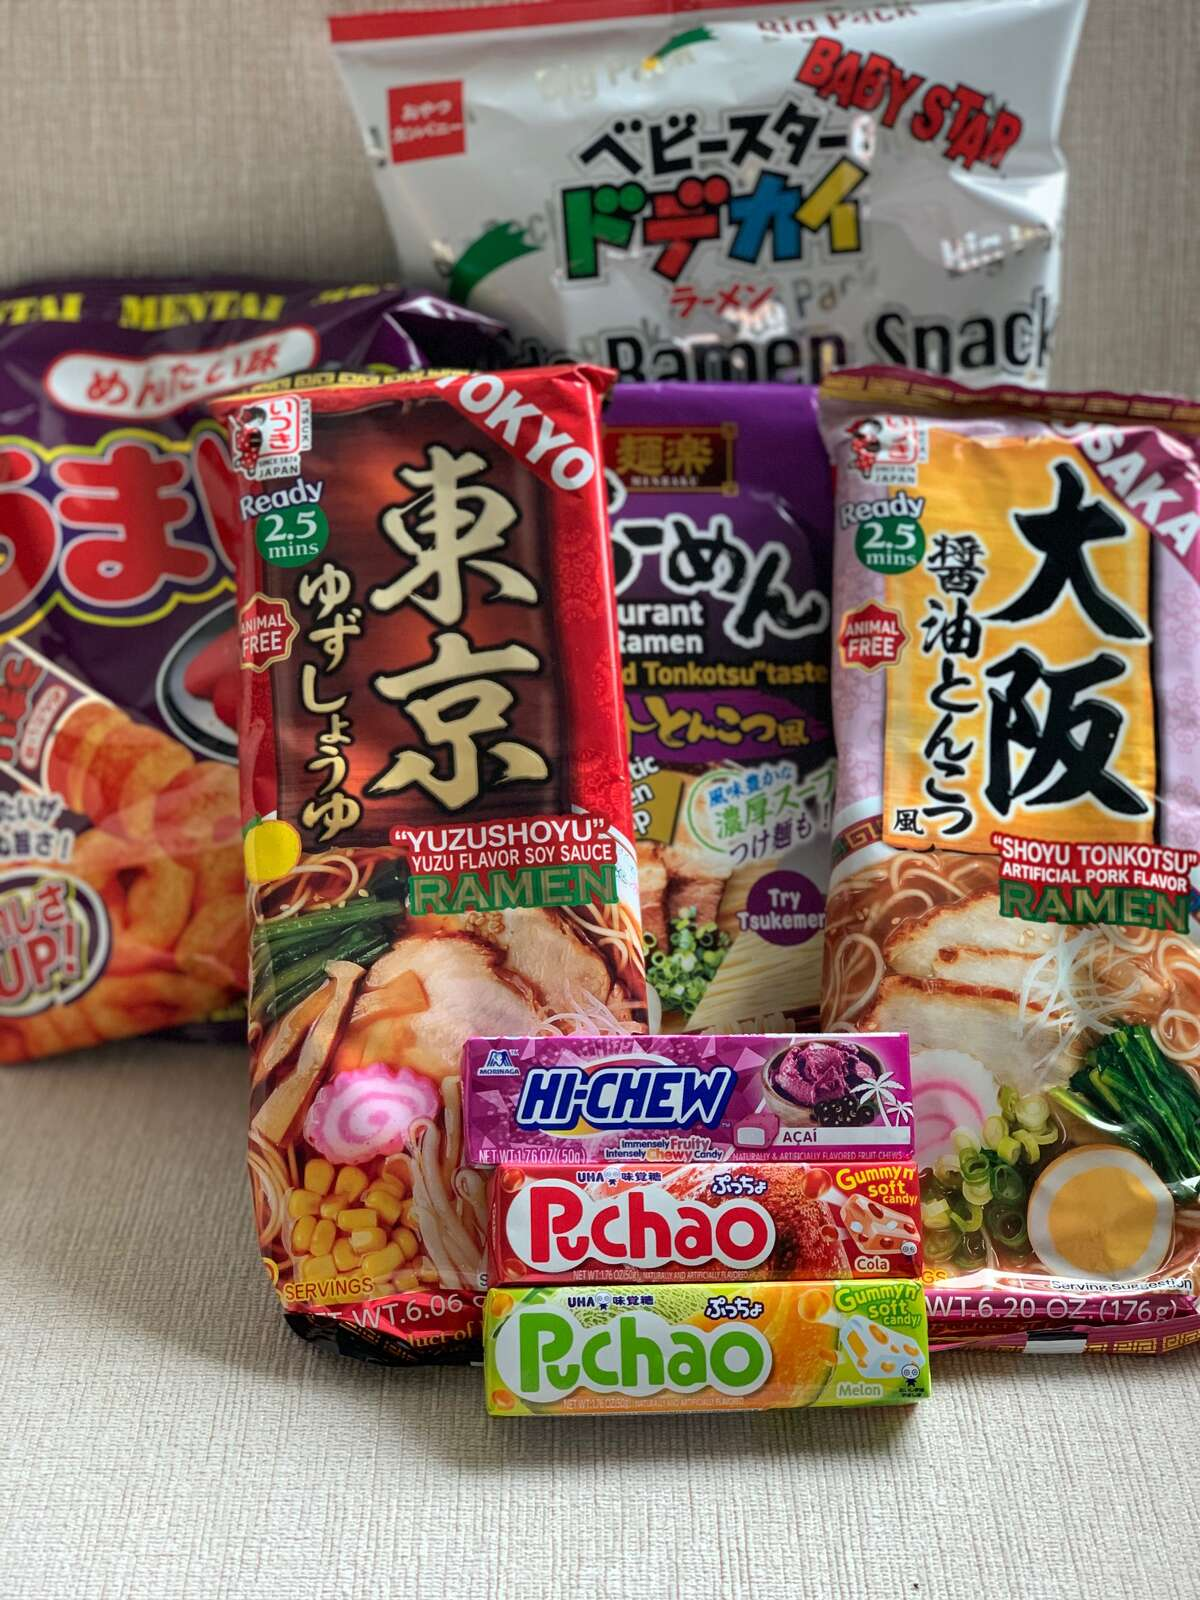 Some of the Japanese treats you can buy at the Mitsuwa Marketplace in Edgewater.